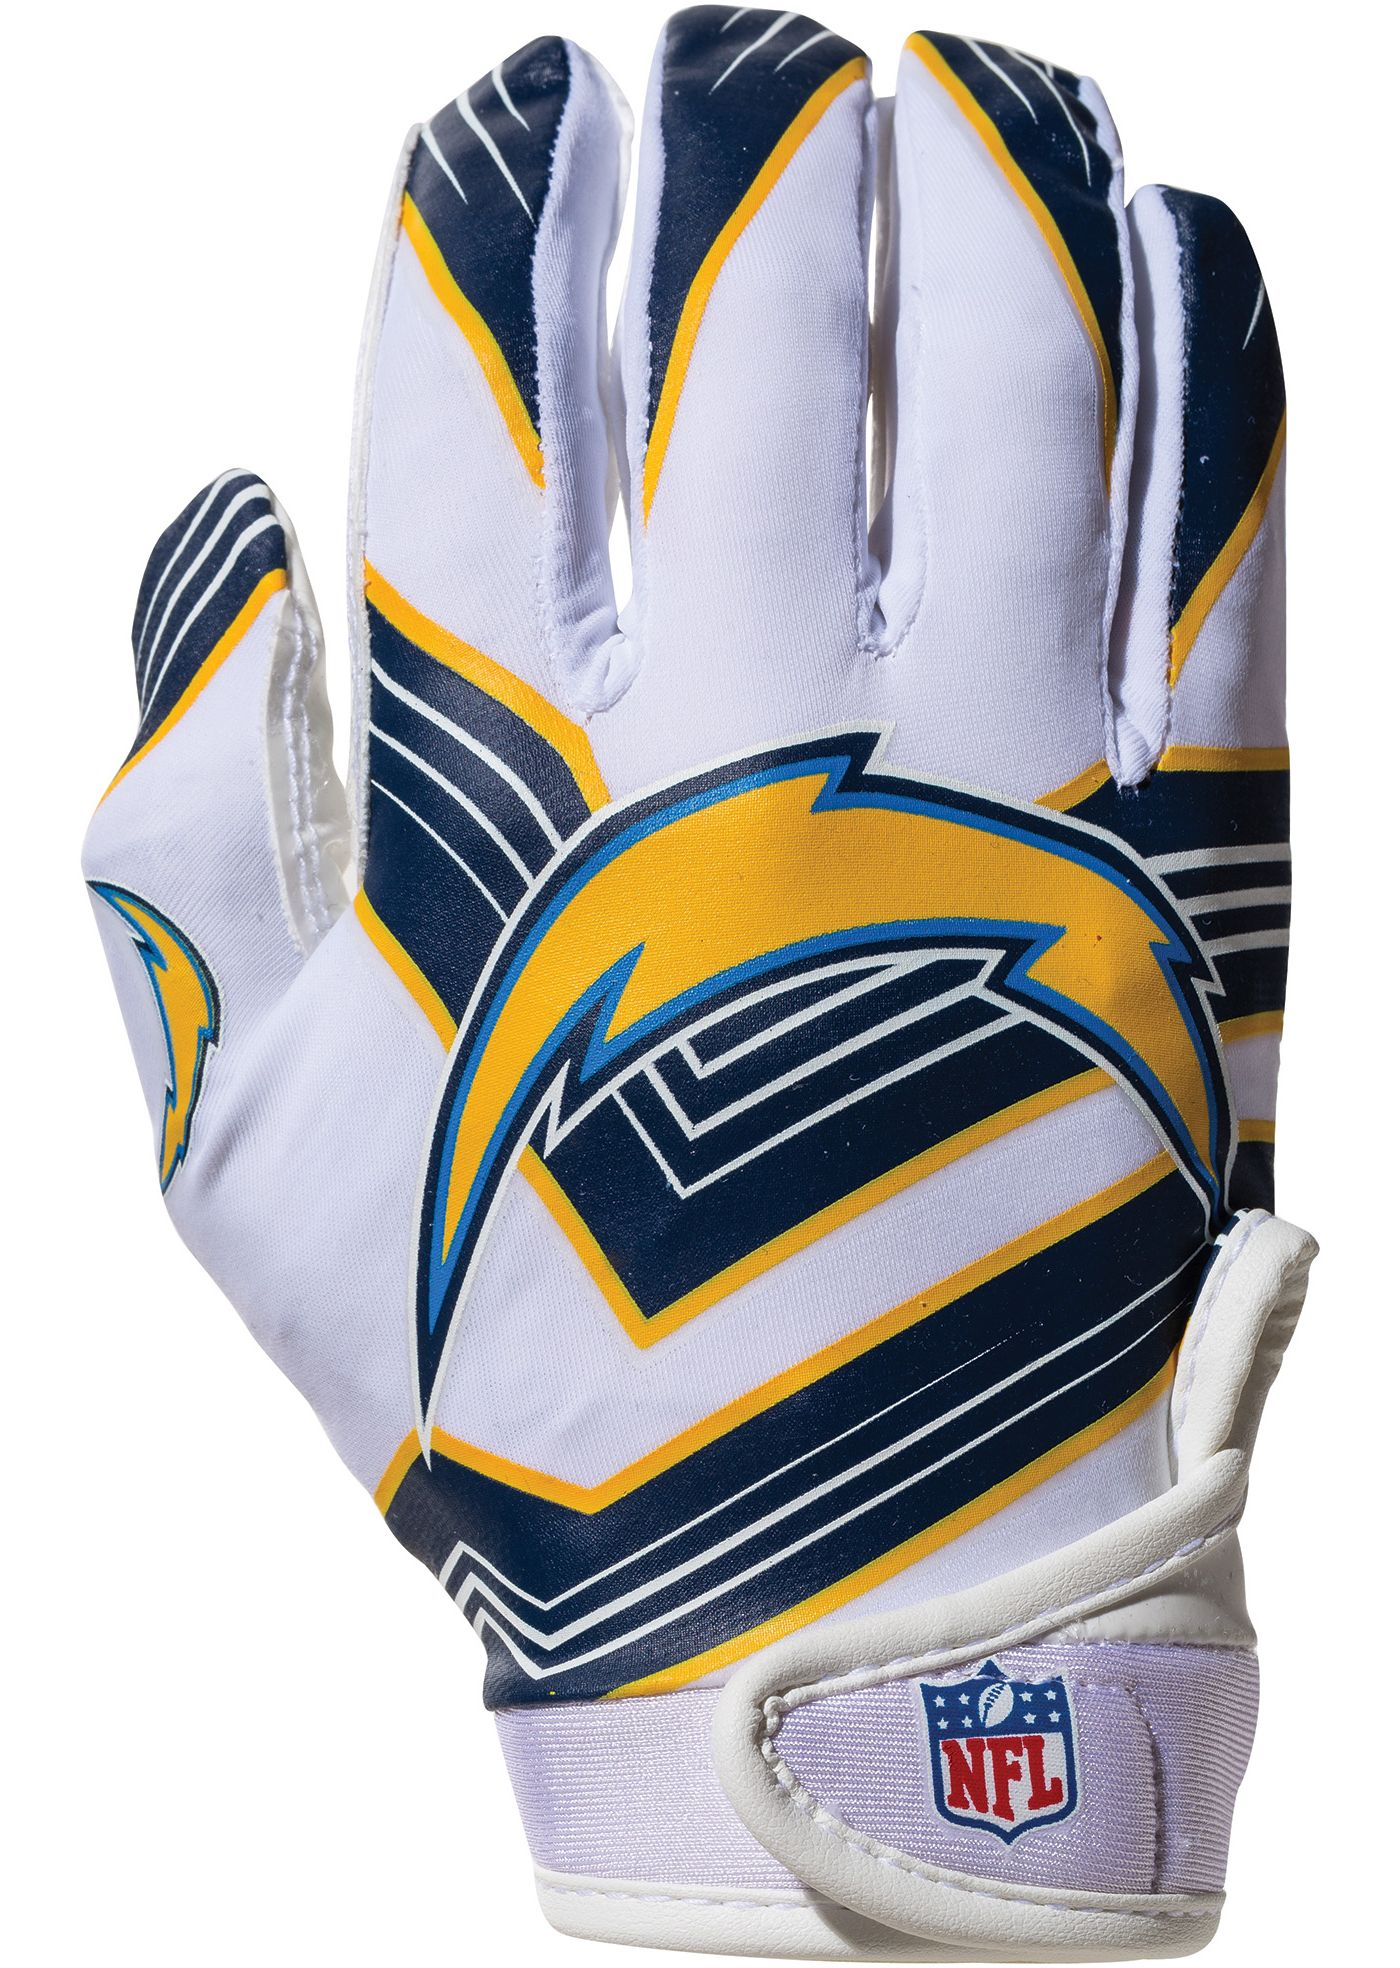 Franklin Los Angeles Chargers Youth Receiver Gloves